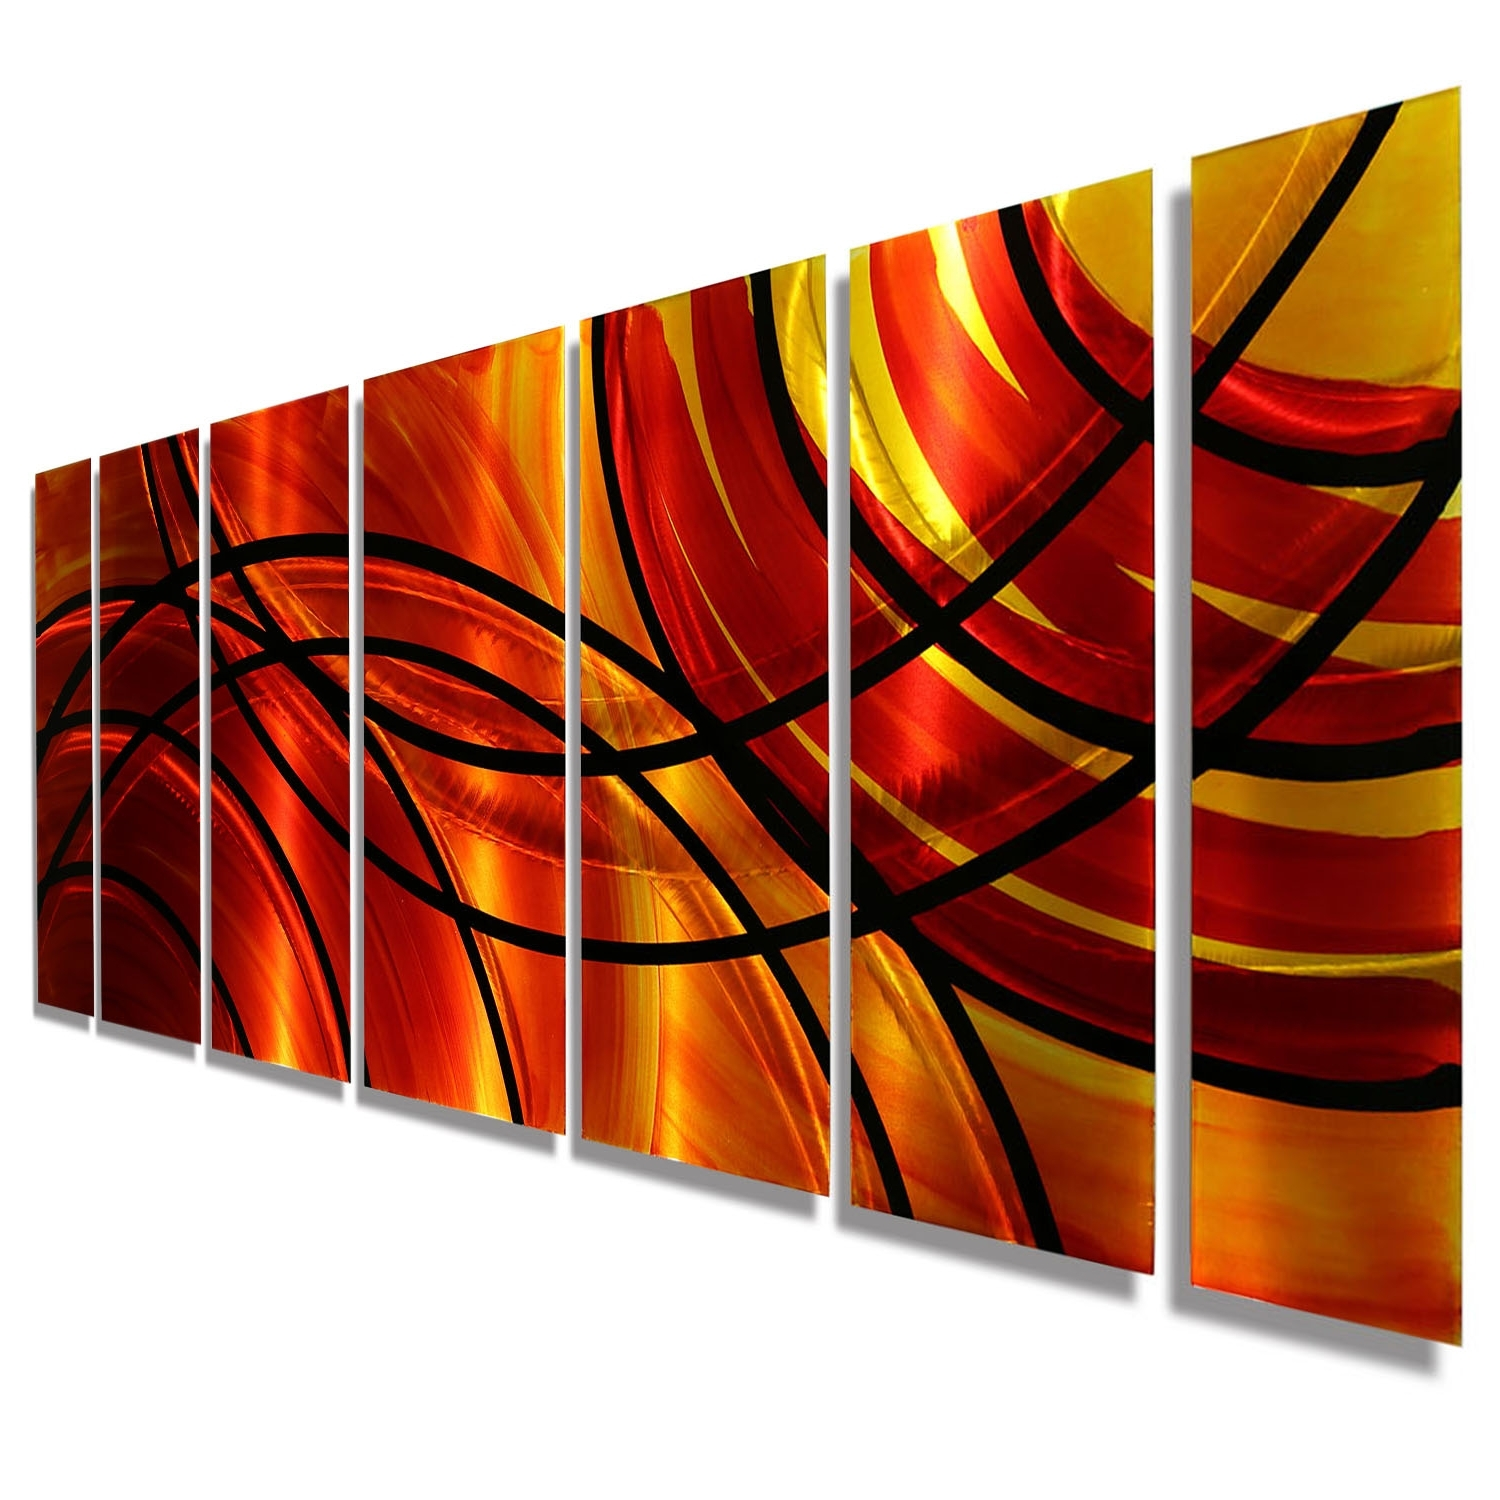 Boundfire – Red & Orange Modern Metal Wall Artjon Allen Throughout Latest Abstract Orange Wall Art (Gallery 3 of 15)